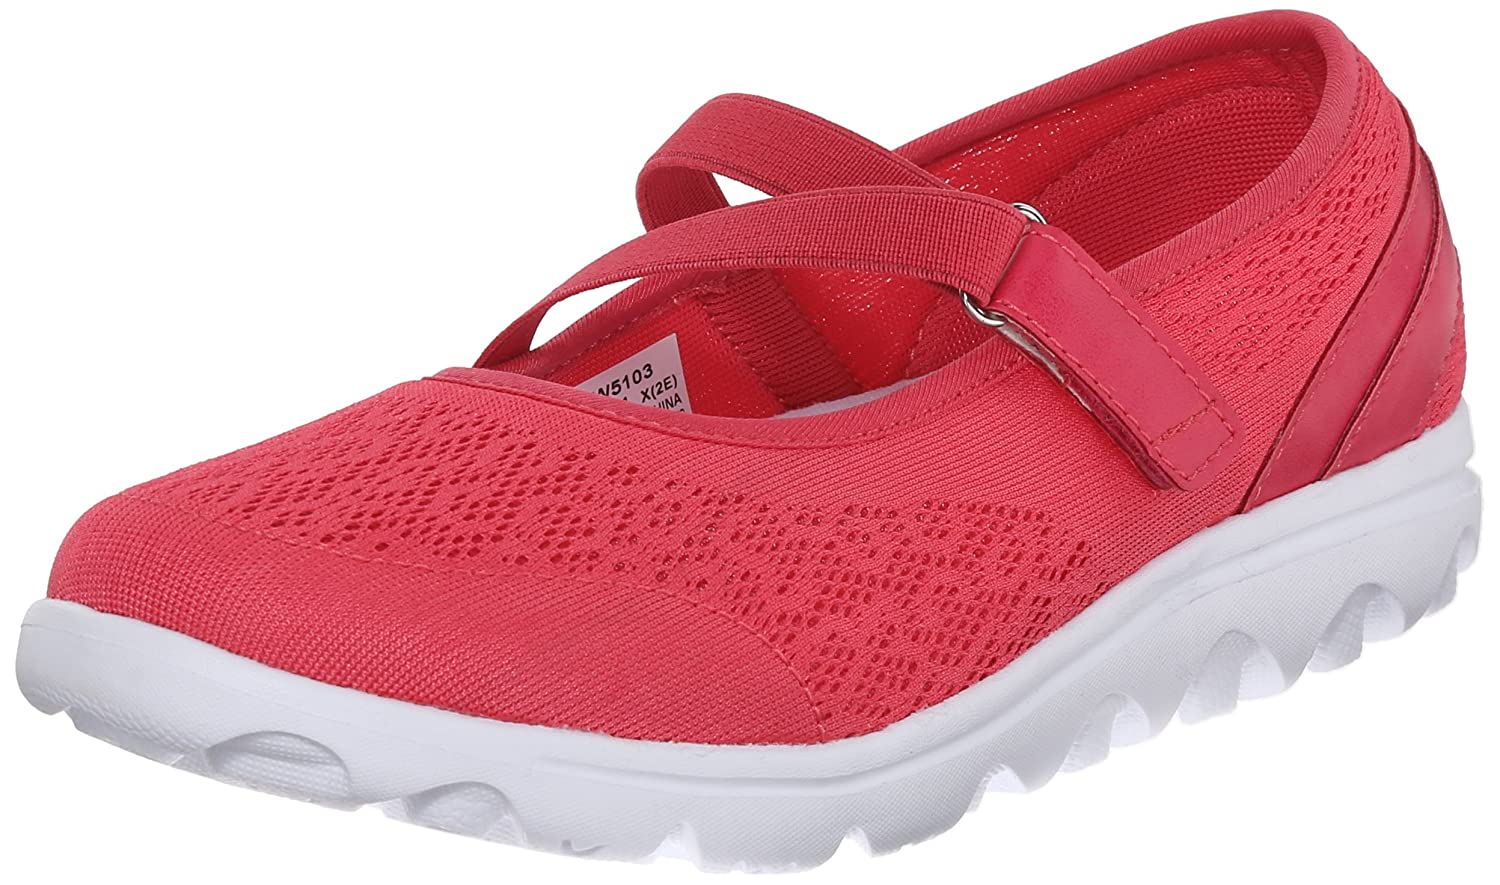 Propet Women's TravelActiv Mary Jane Fashion Sneaker B0118FGOAA 7.5 B(M) US|Watermelon Red